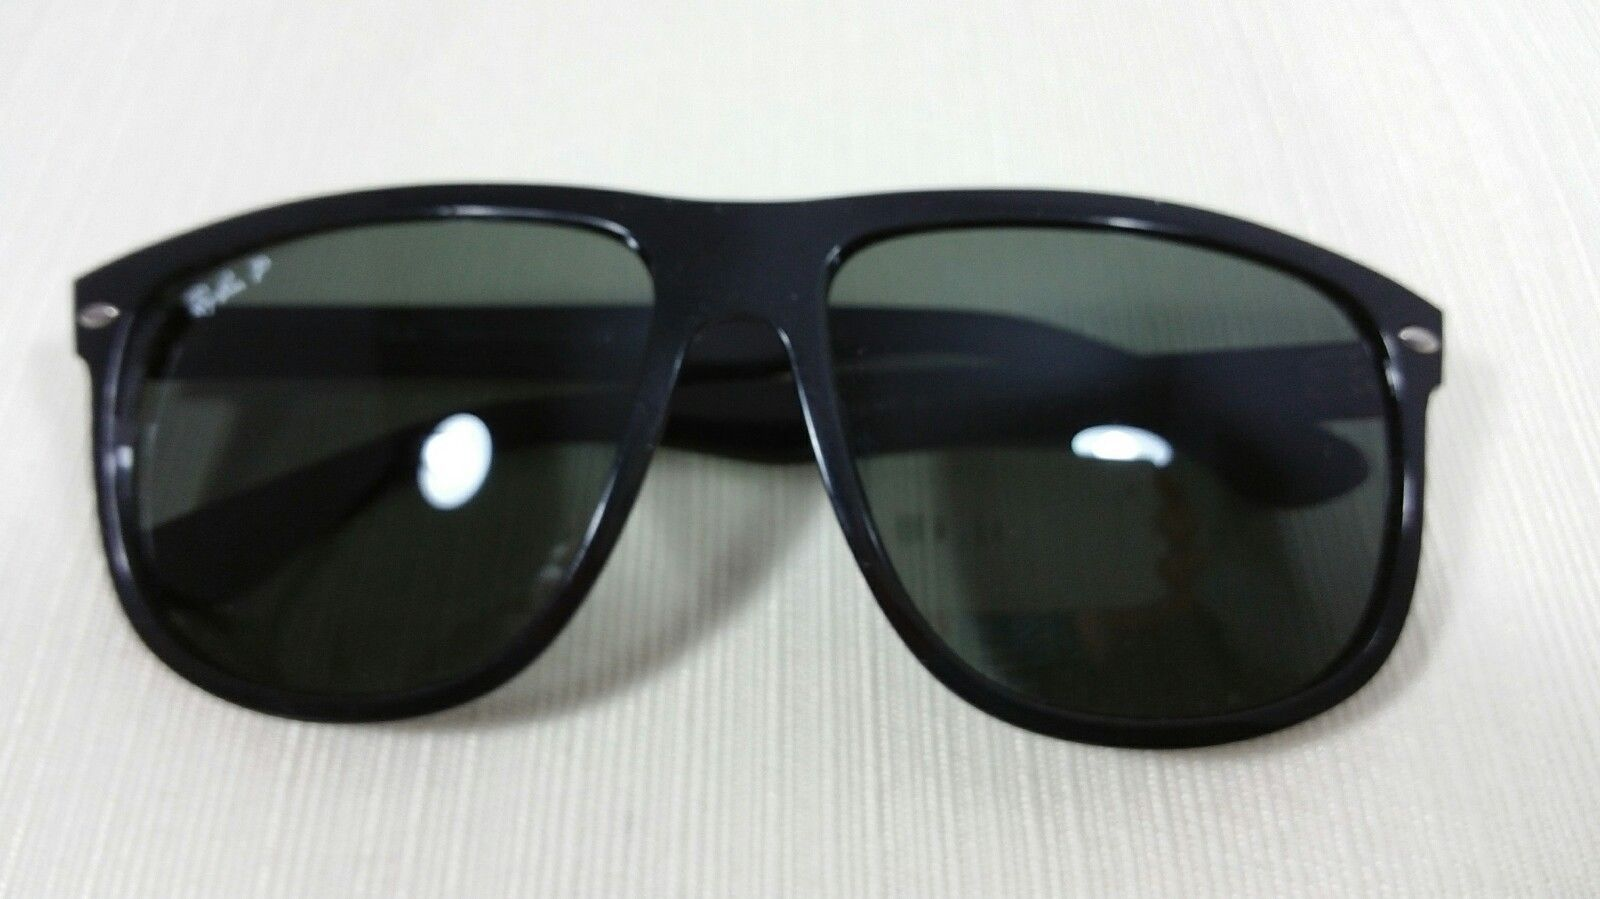 66f752565 Ray-Ban RB4147 Black Plastic Frame and 50 similar items. 57